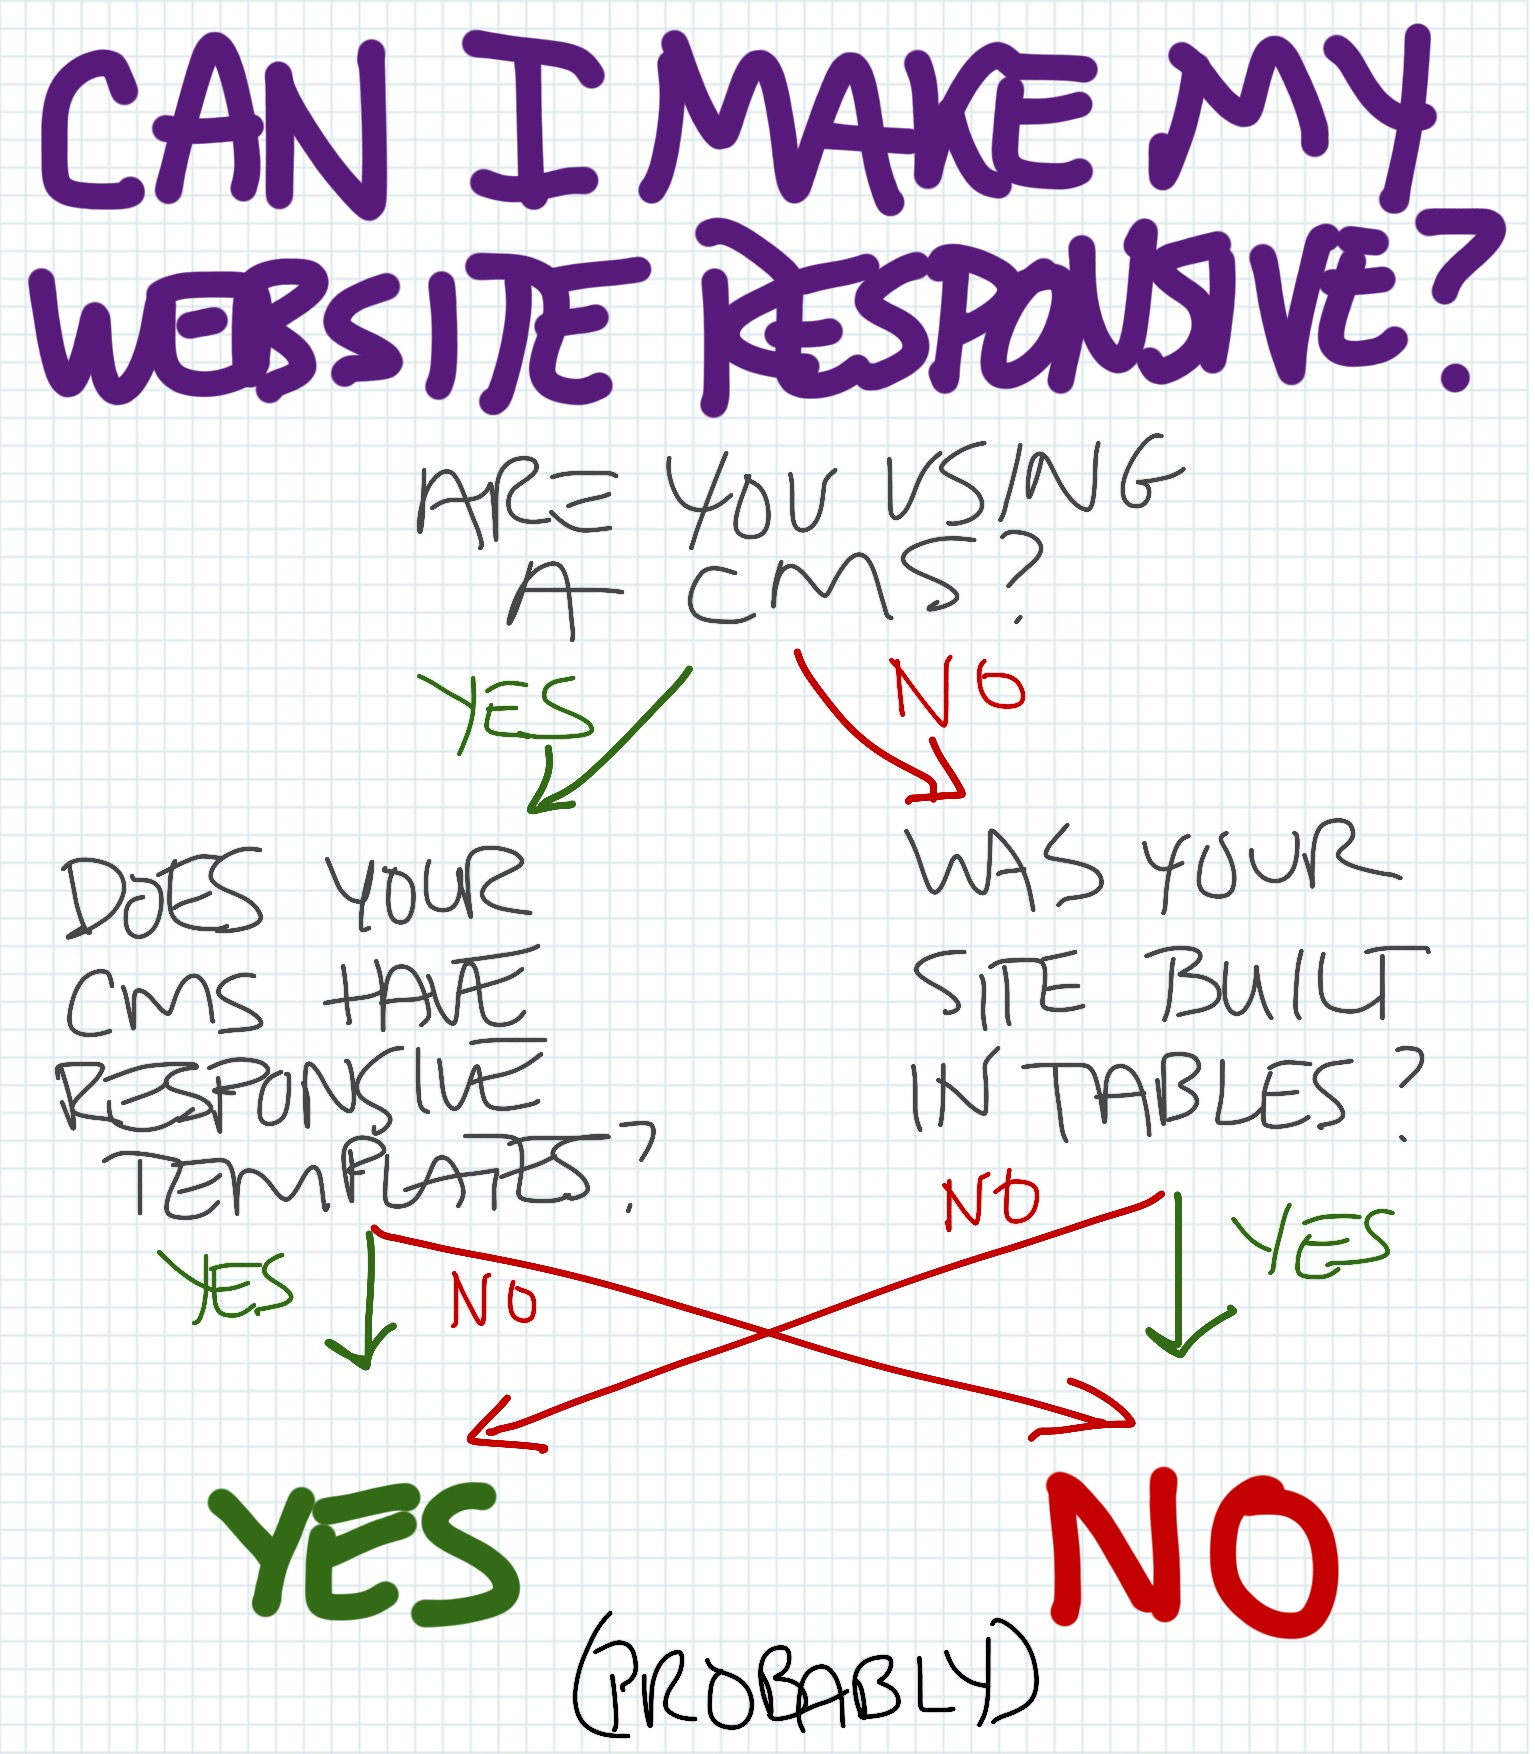 can I make my site responsive?